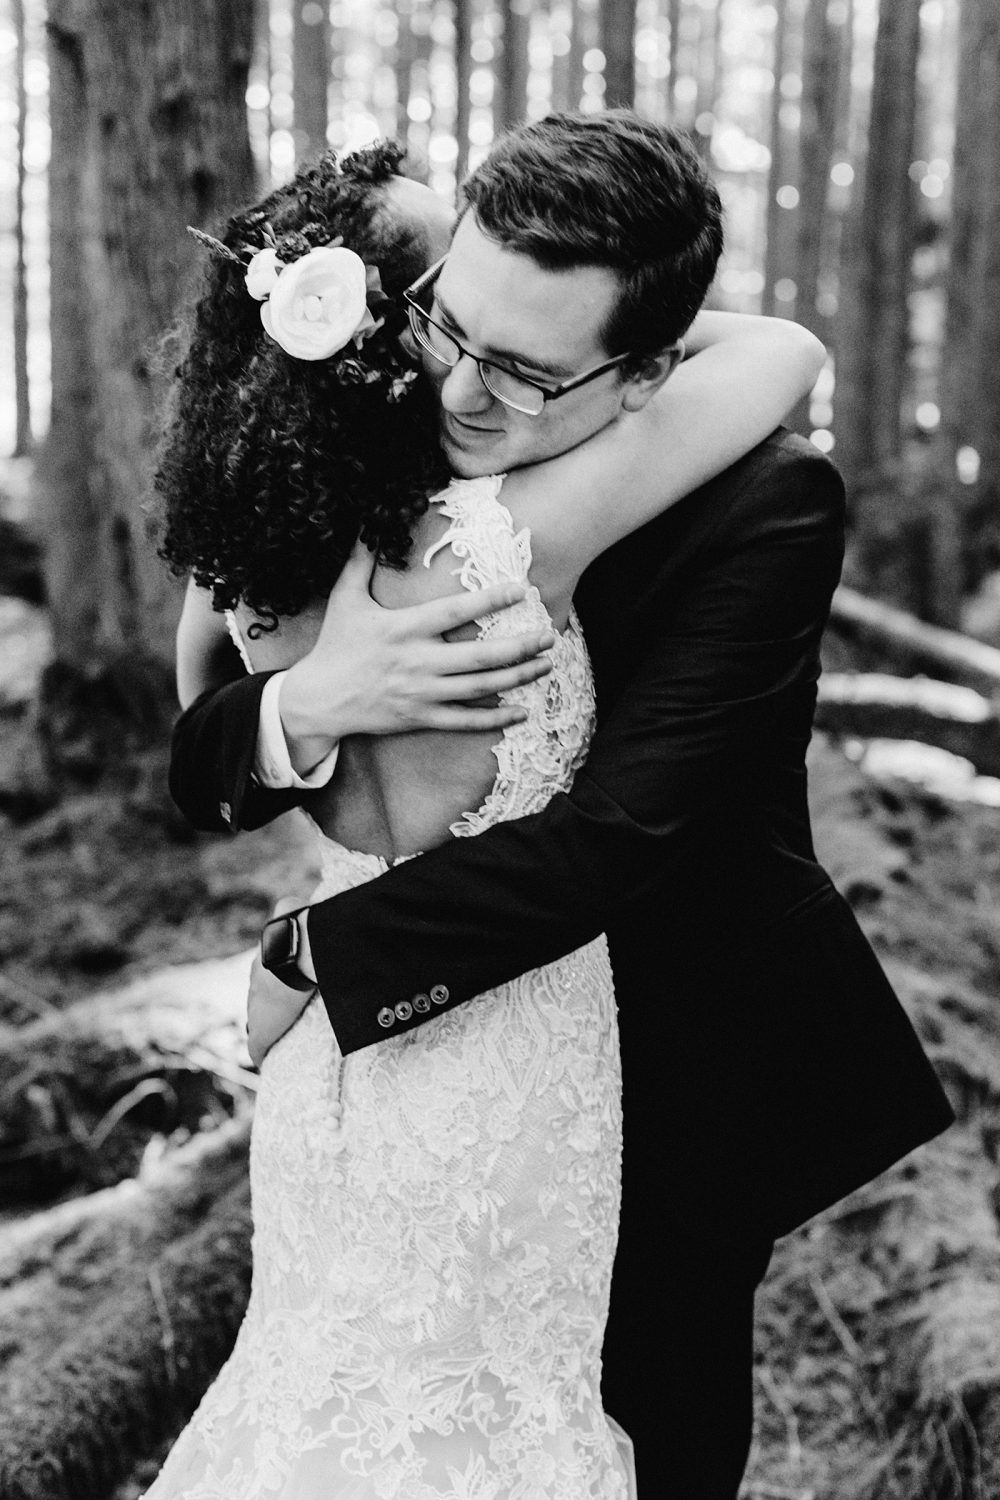 How To Choose The Best Wedding Vendors, emerald forest elopement venue in the woods, tminspired photography, groom hugging bride, big embrace, black and white photo, sweet pose ideas